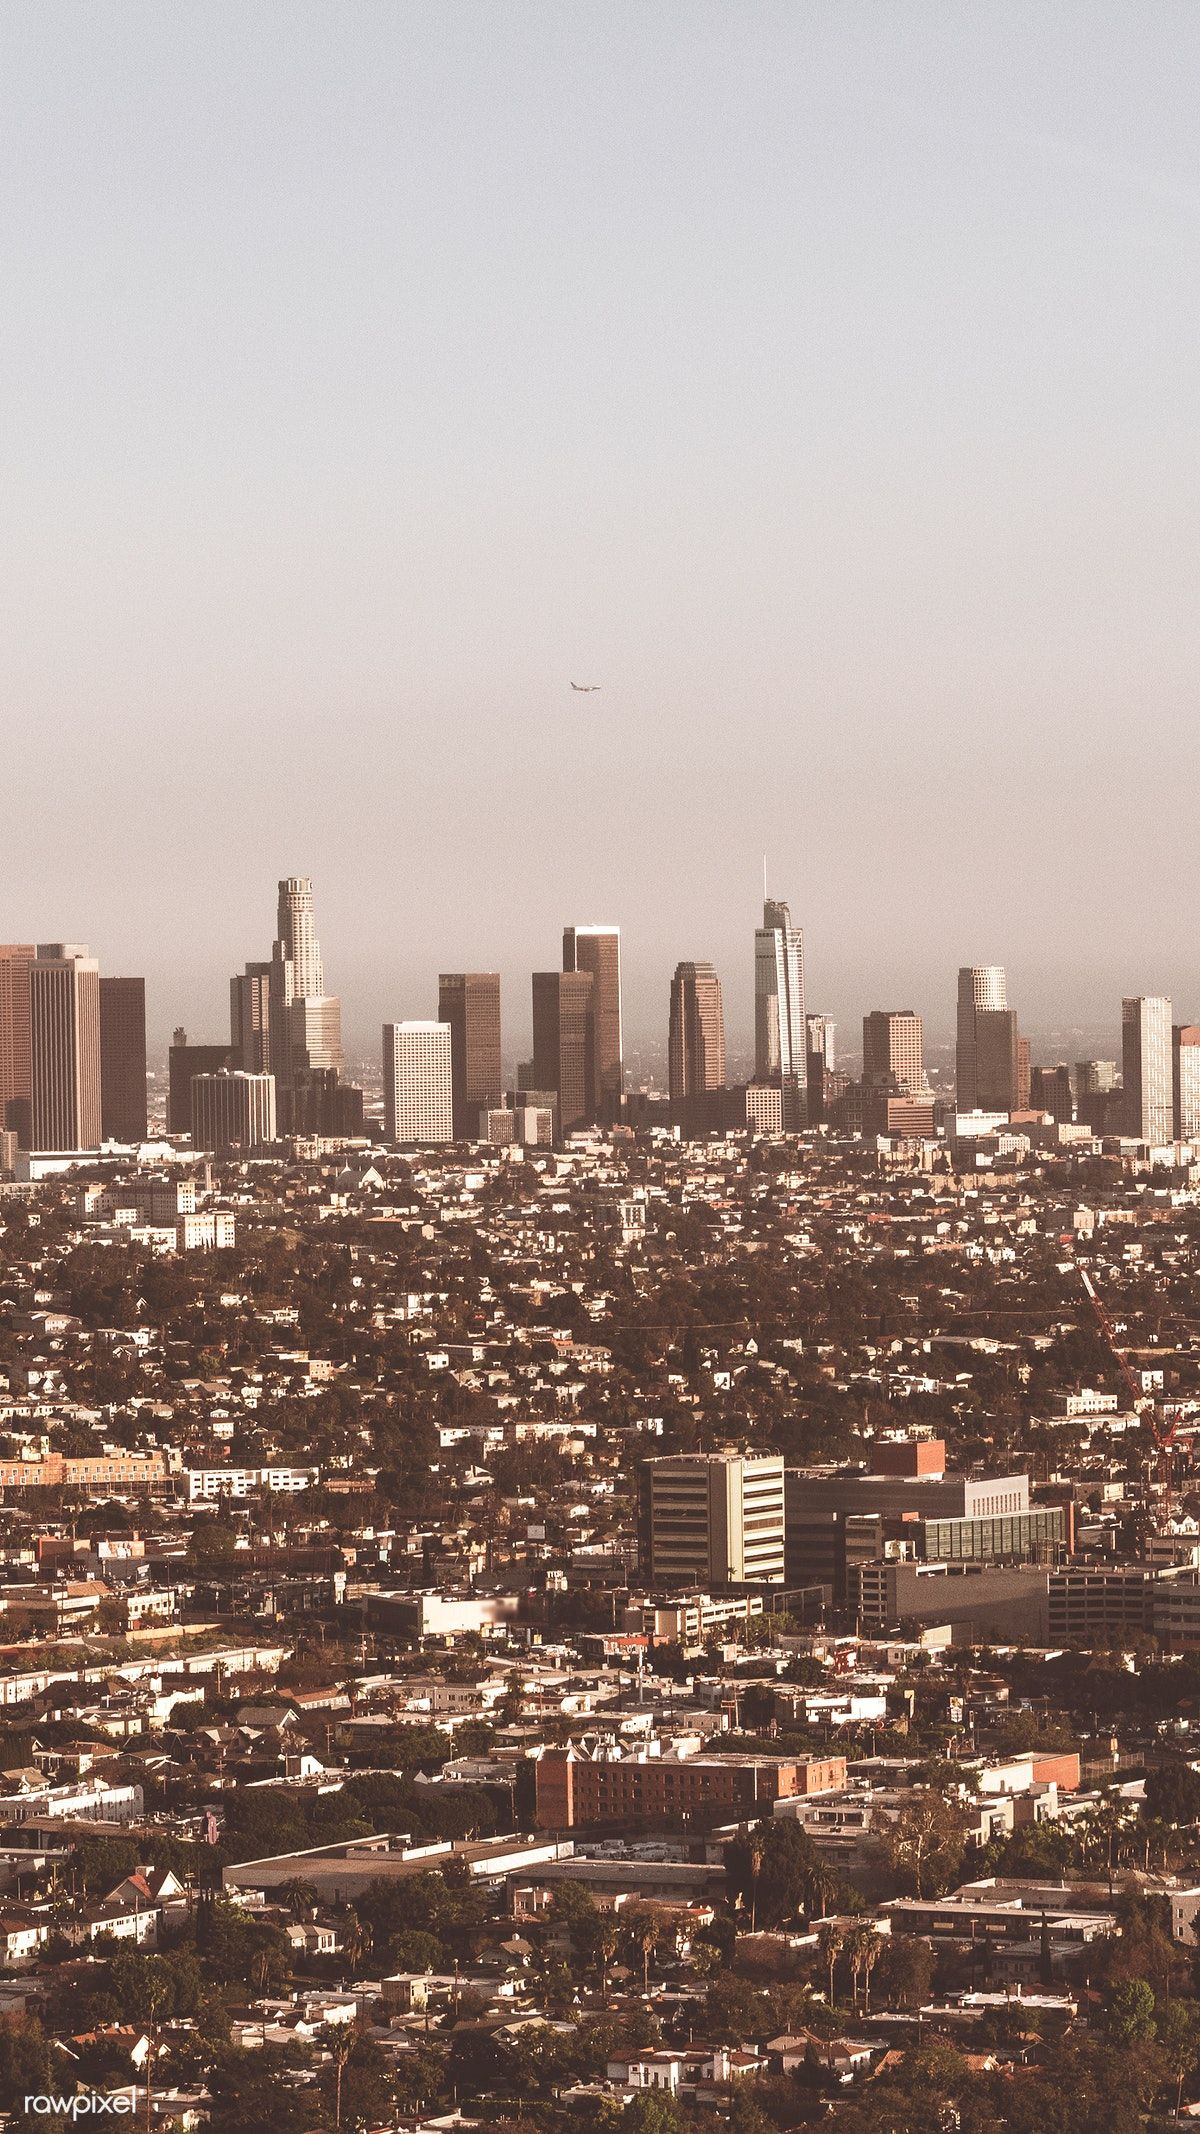 Pin By 𝘔𝘈𝘙𝘐𝘐𝘐𝘗𝘖𝘚𝘈 On Wallpapers In 2020 Los Angeles Wallpaper City Wallpaper Los Angeles Iphone Wallpaper